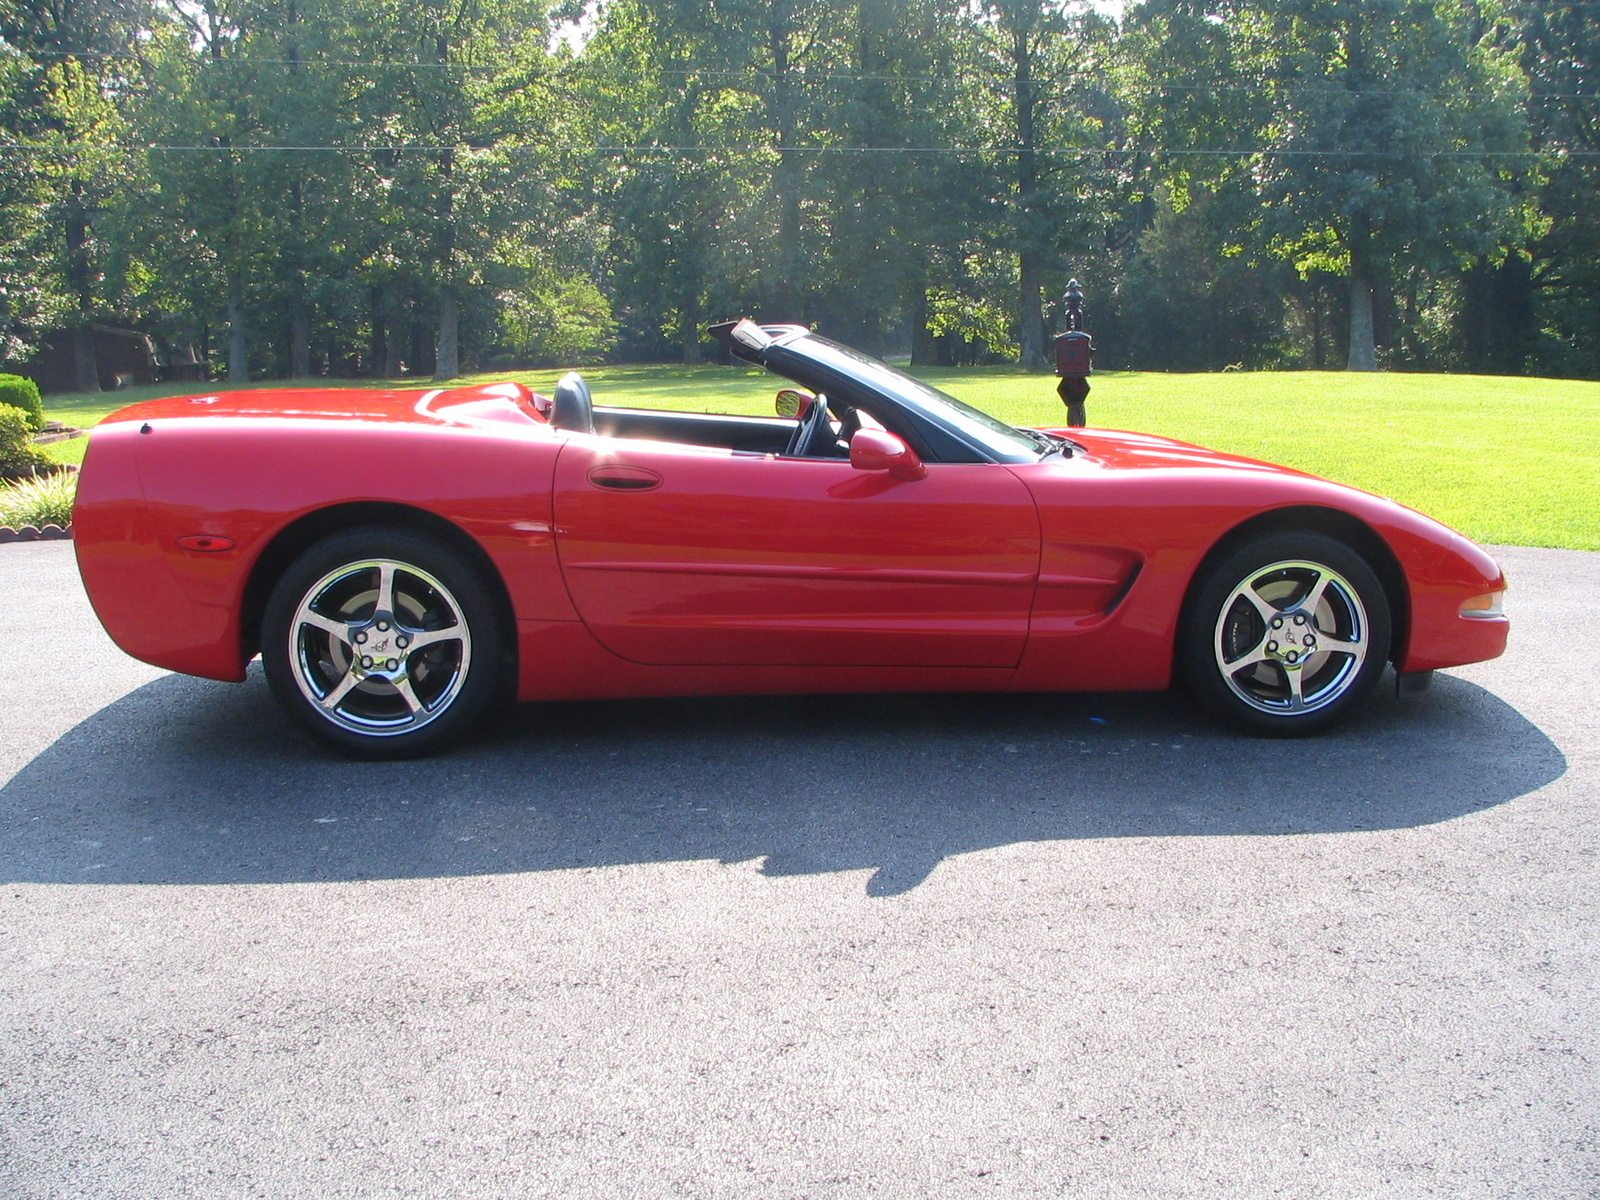 2000 c5 corvette image gallery pictures. Black Bedroom Furniture Sets. Home Design Ideas